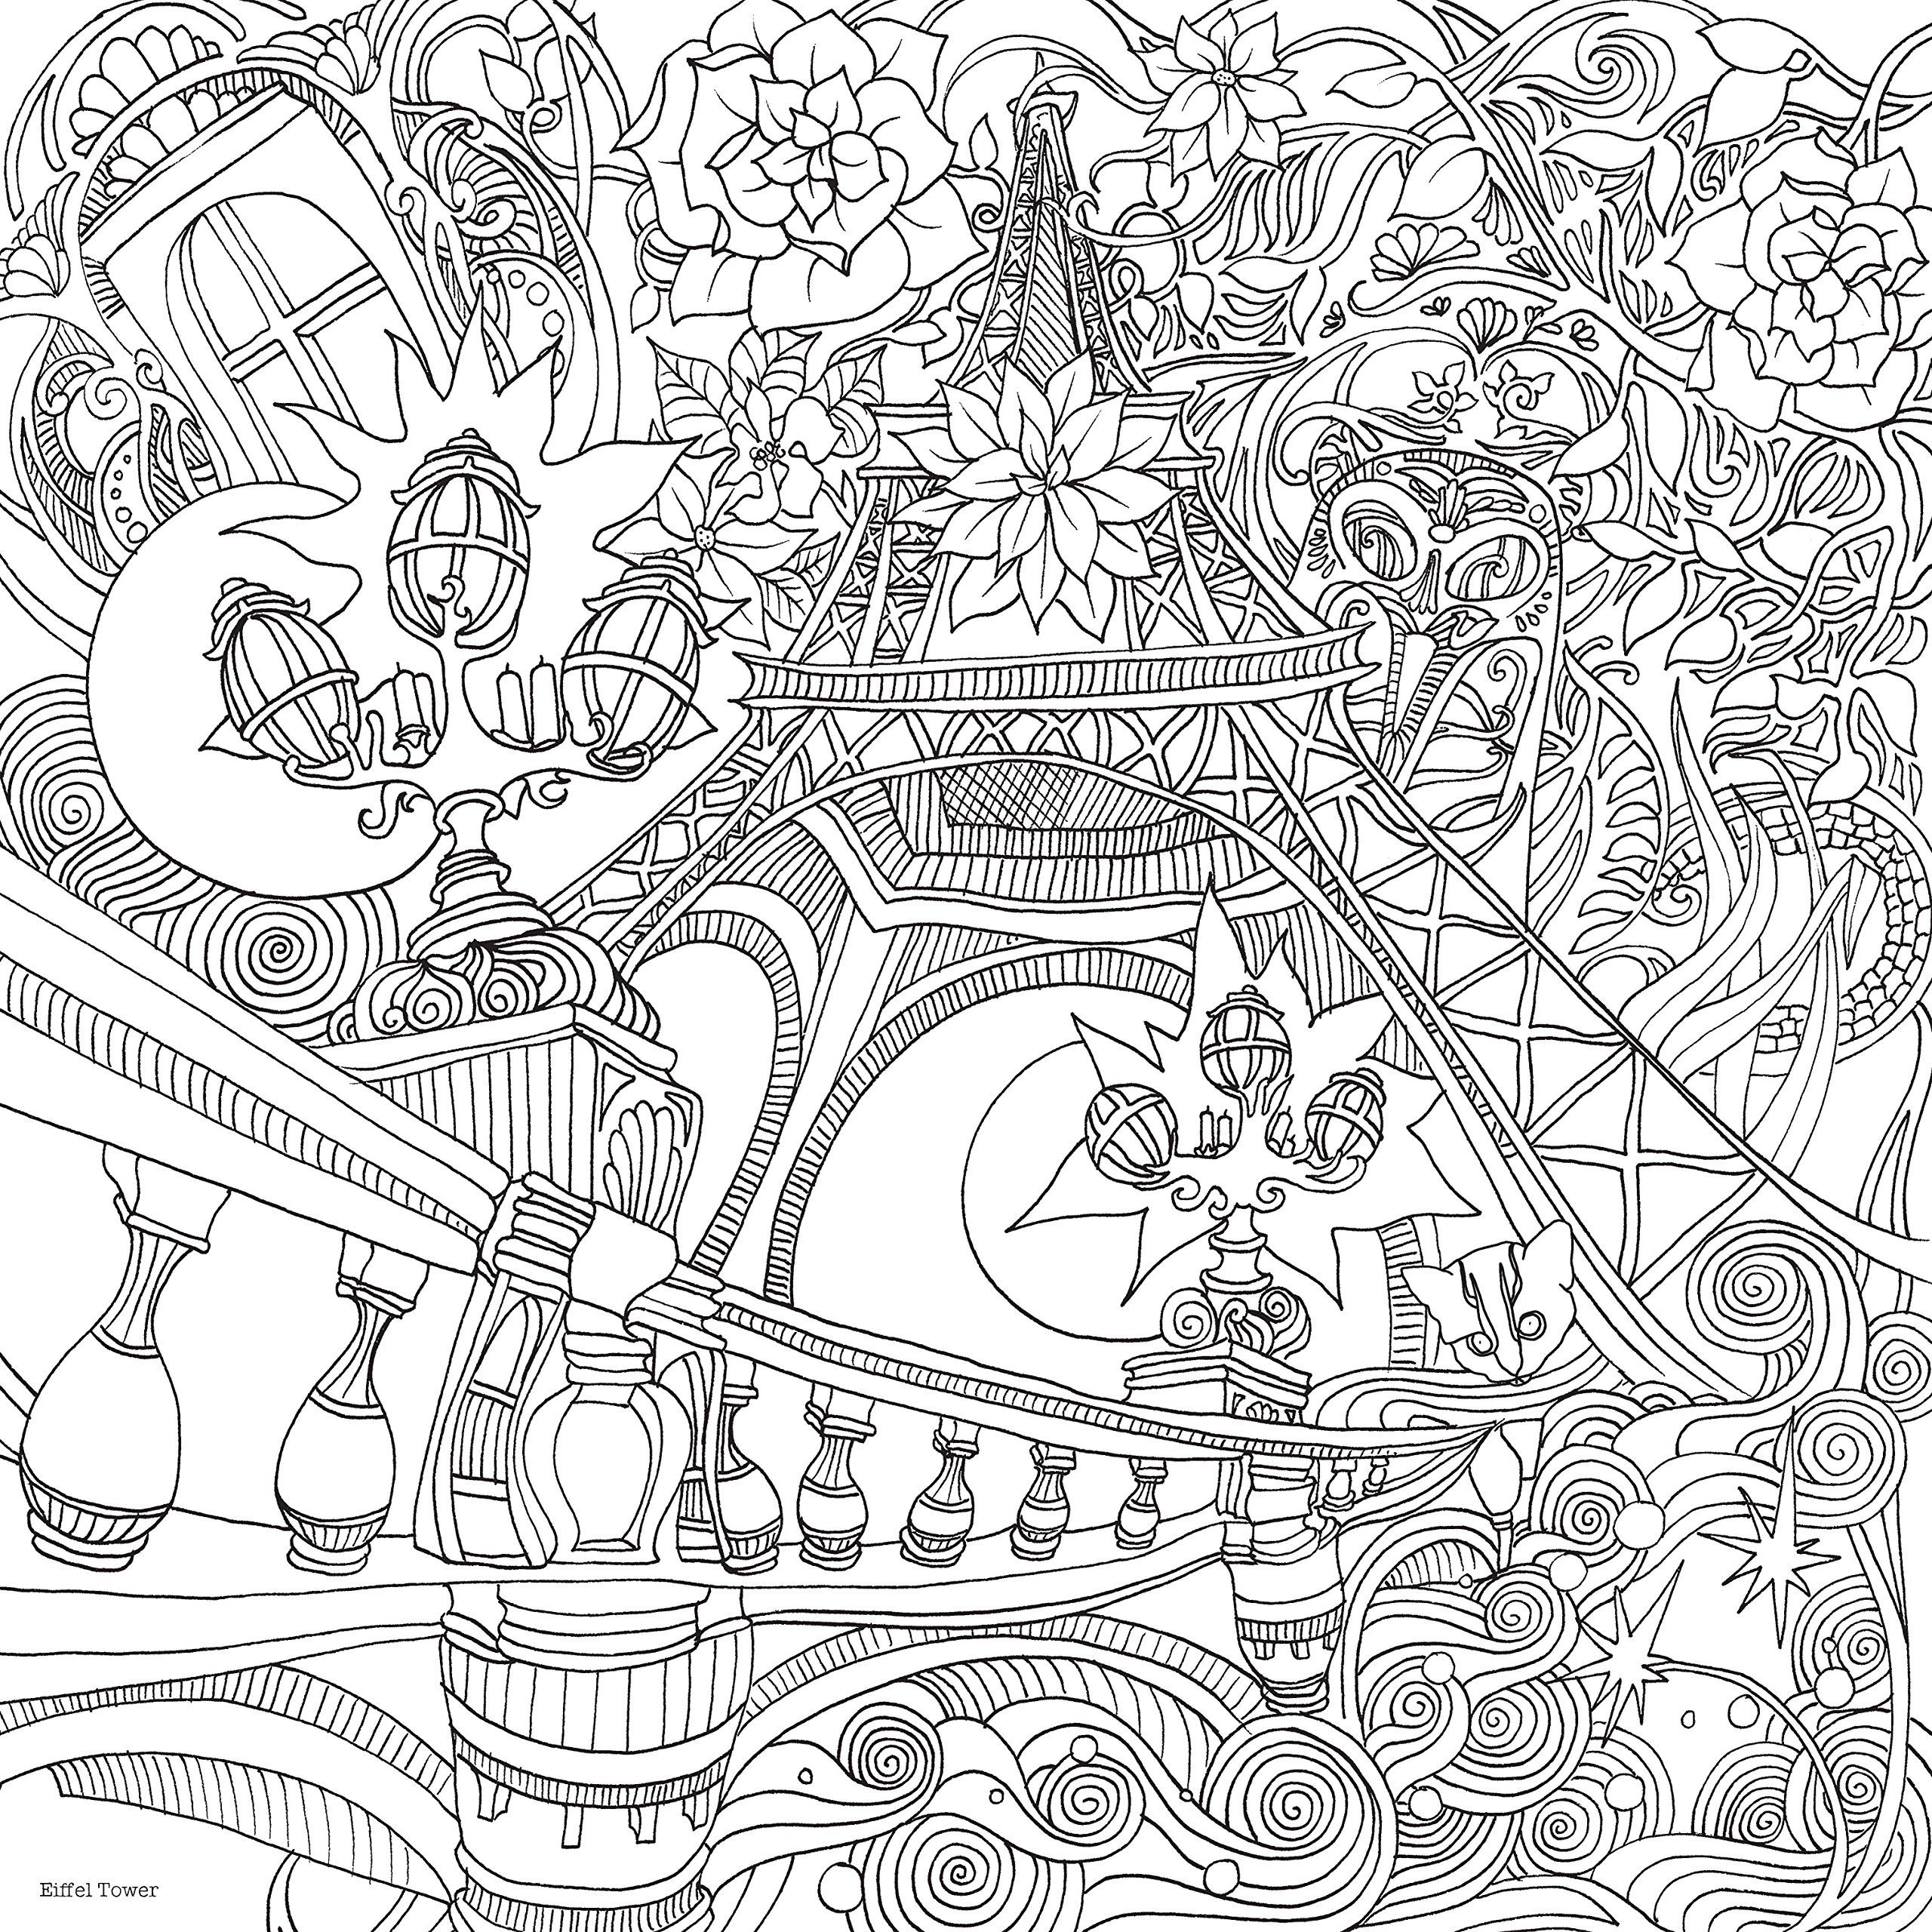 Th the magical city colouring in book - The magical city a colouring book lizzie mary cullen 9781405924092 amazonsmile